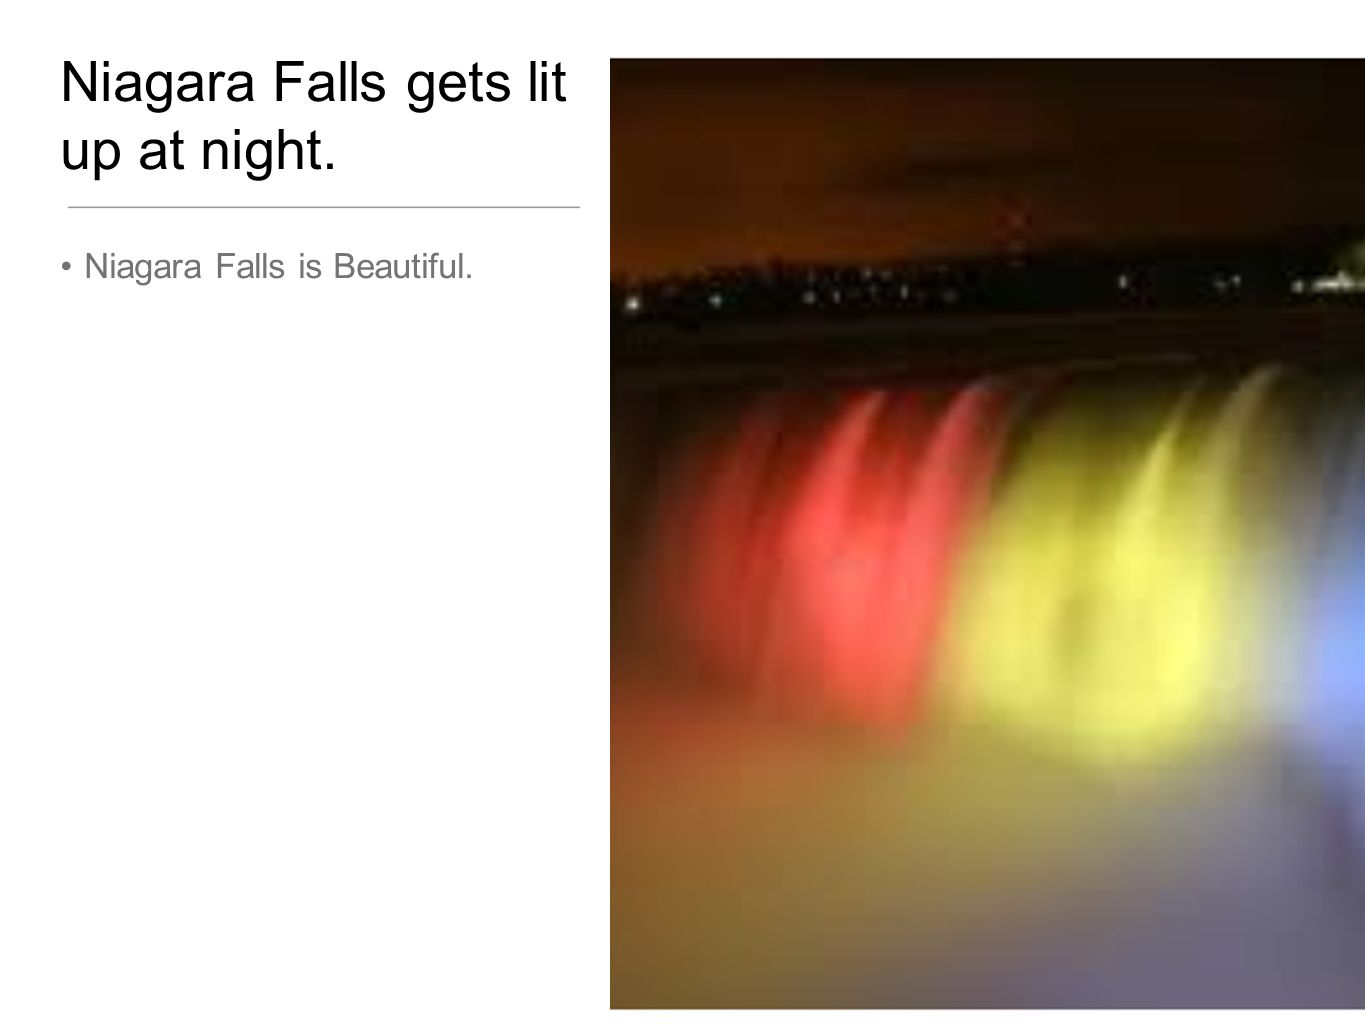 Niagara Falls gets lit up at night. Niagara Falls is Beautiful.